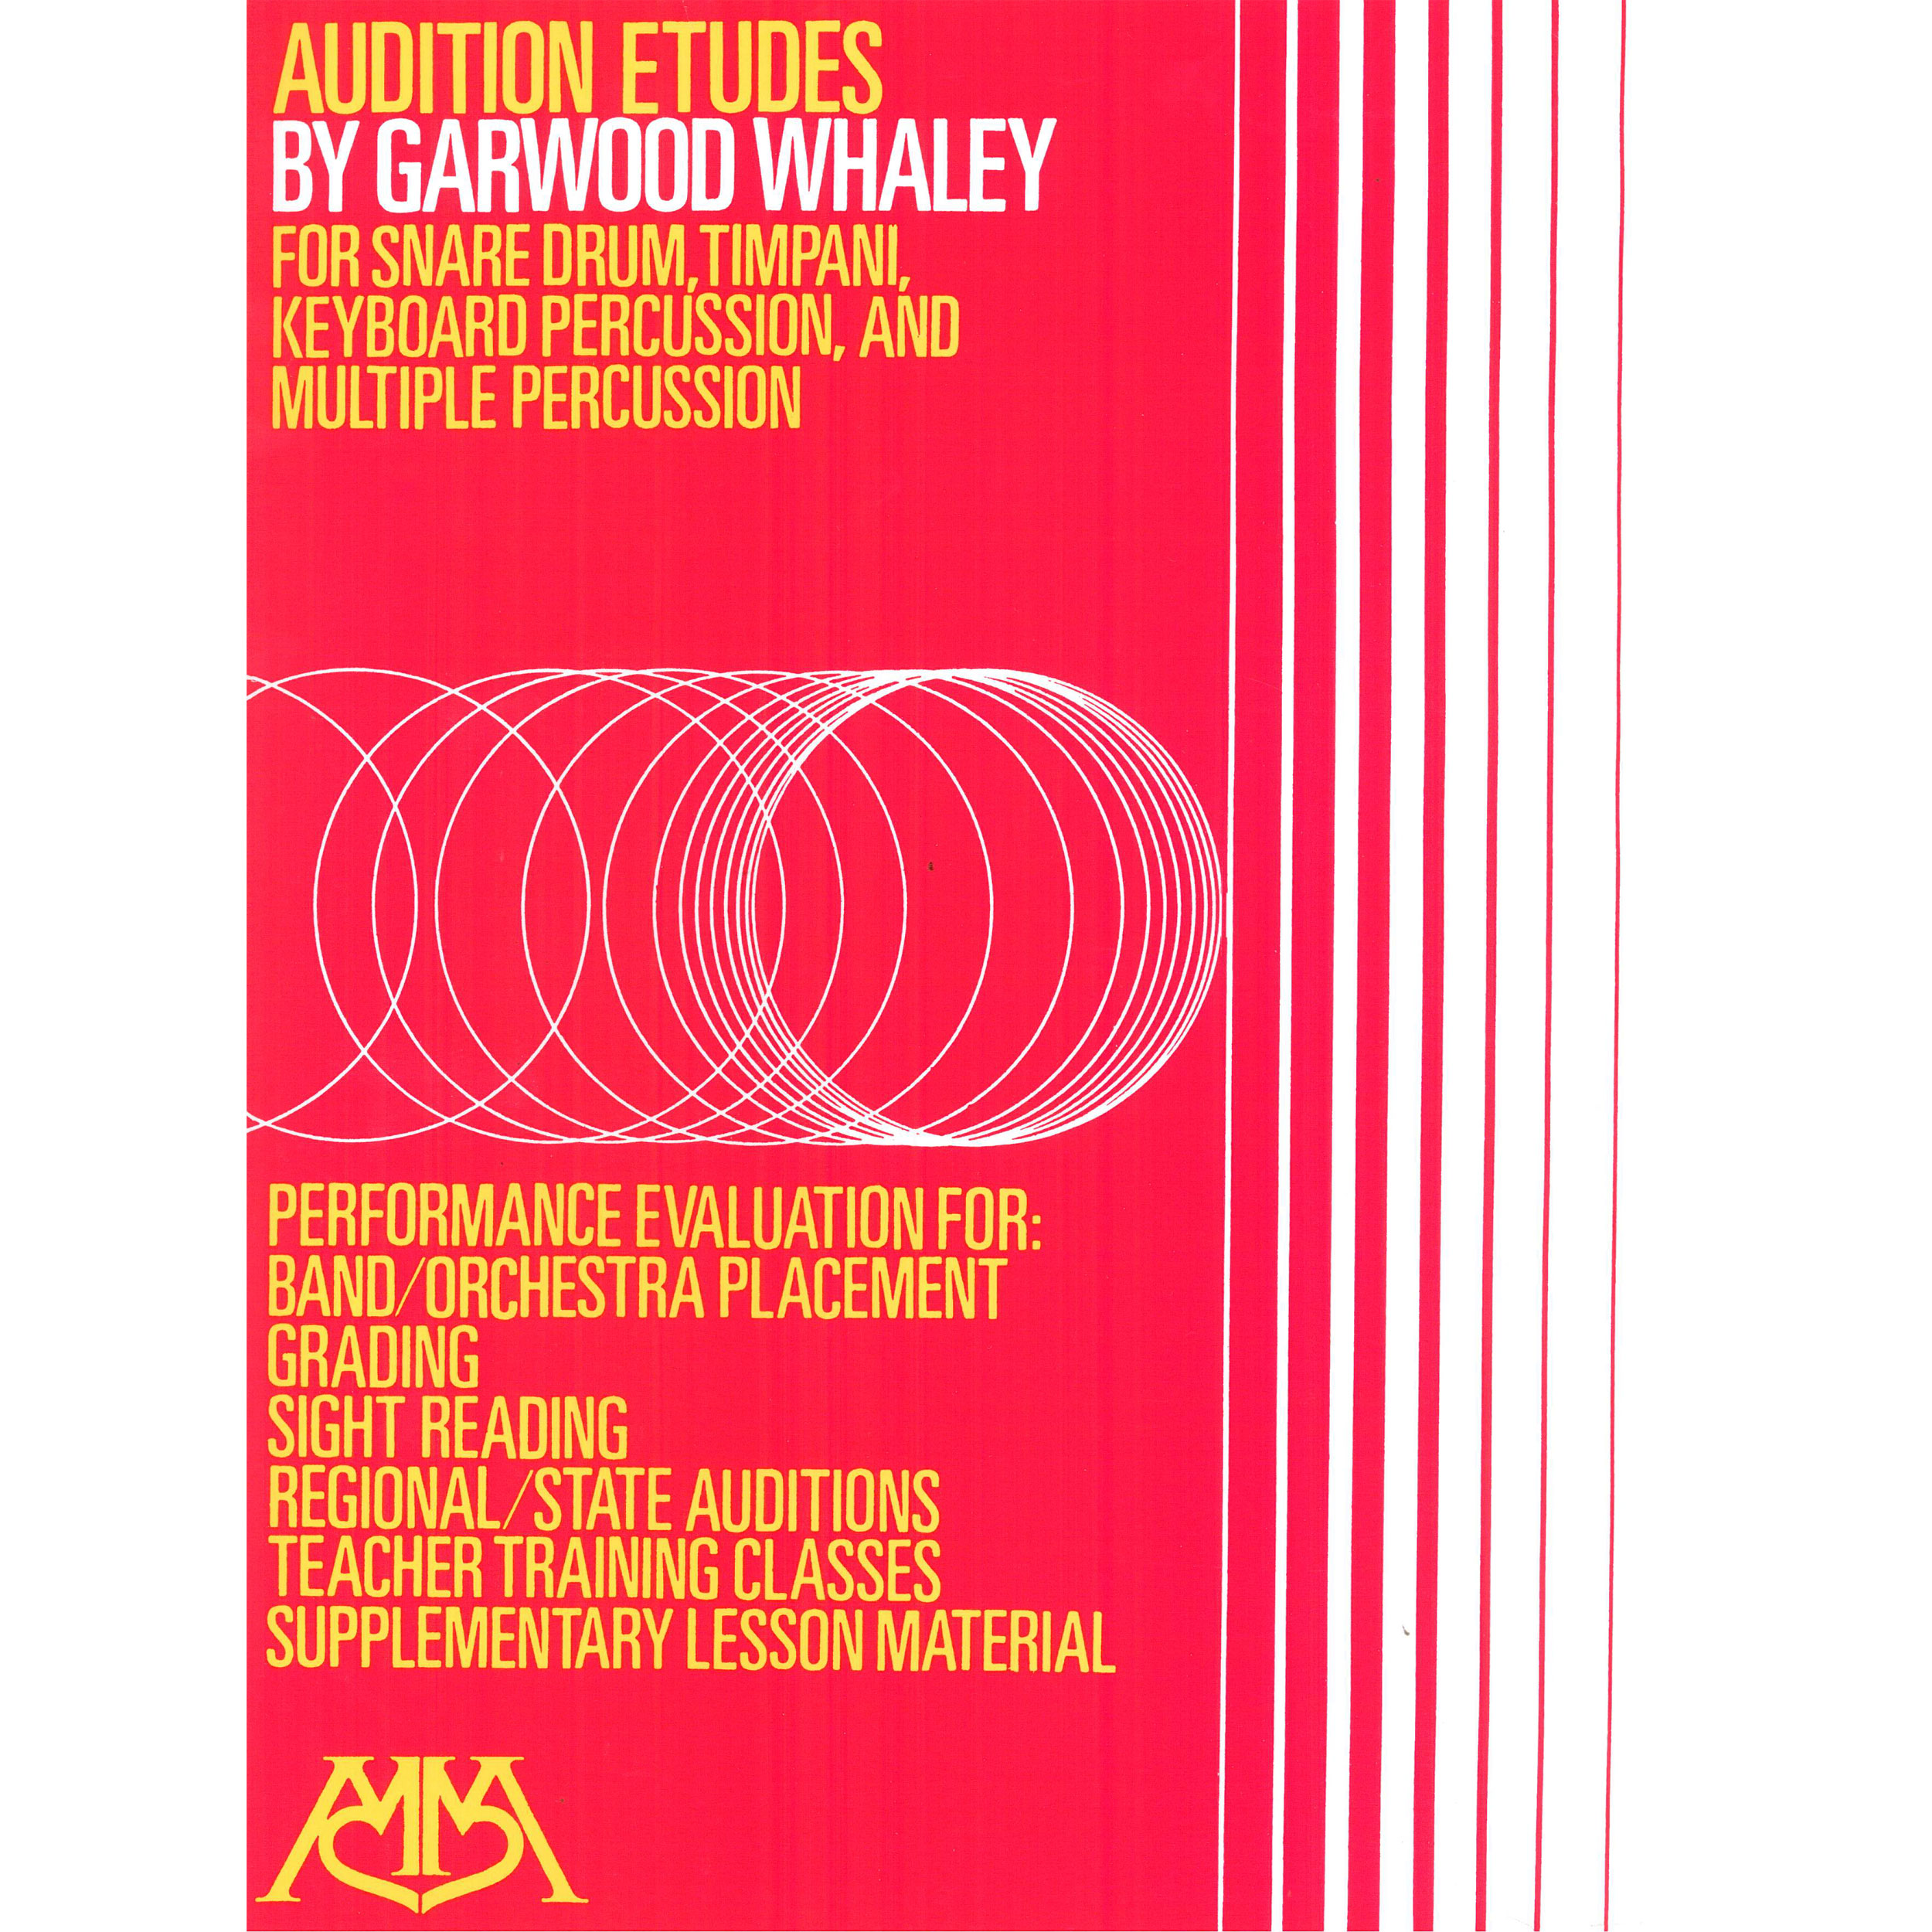 Audition Etudes by Garwood Whaley